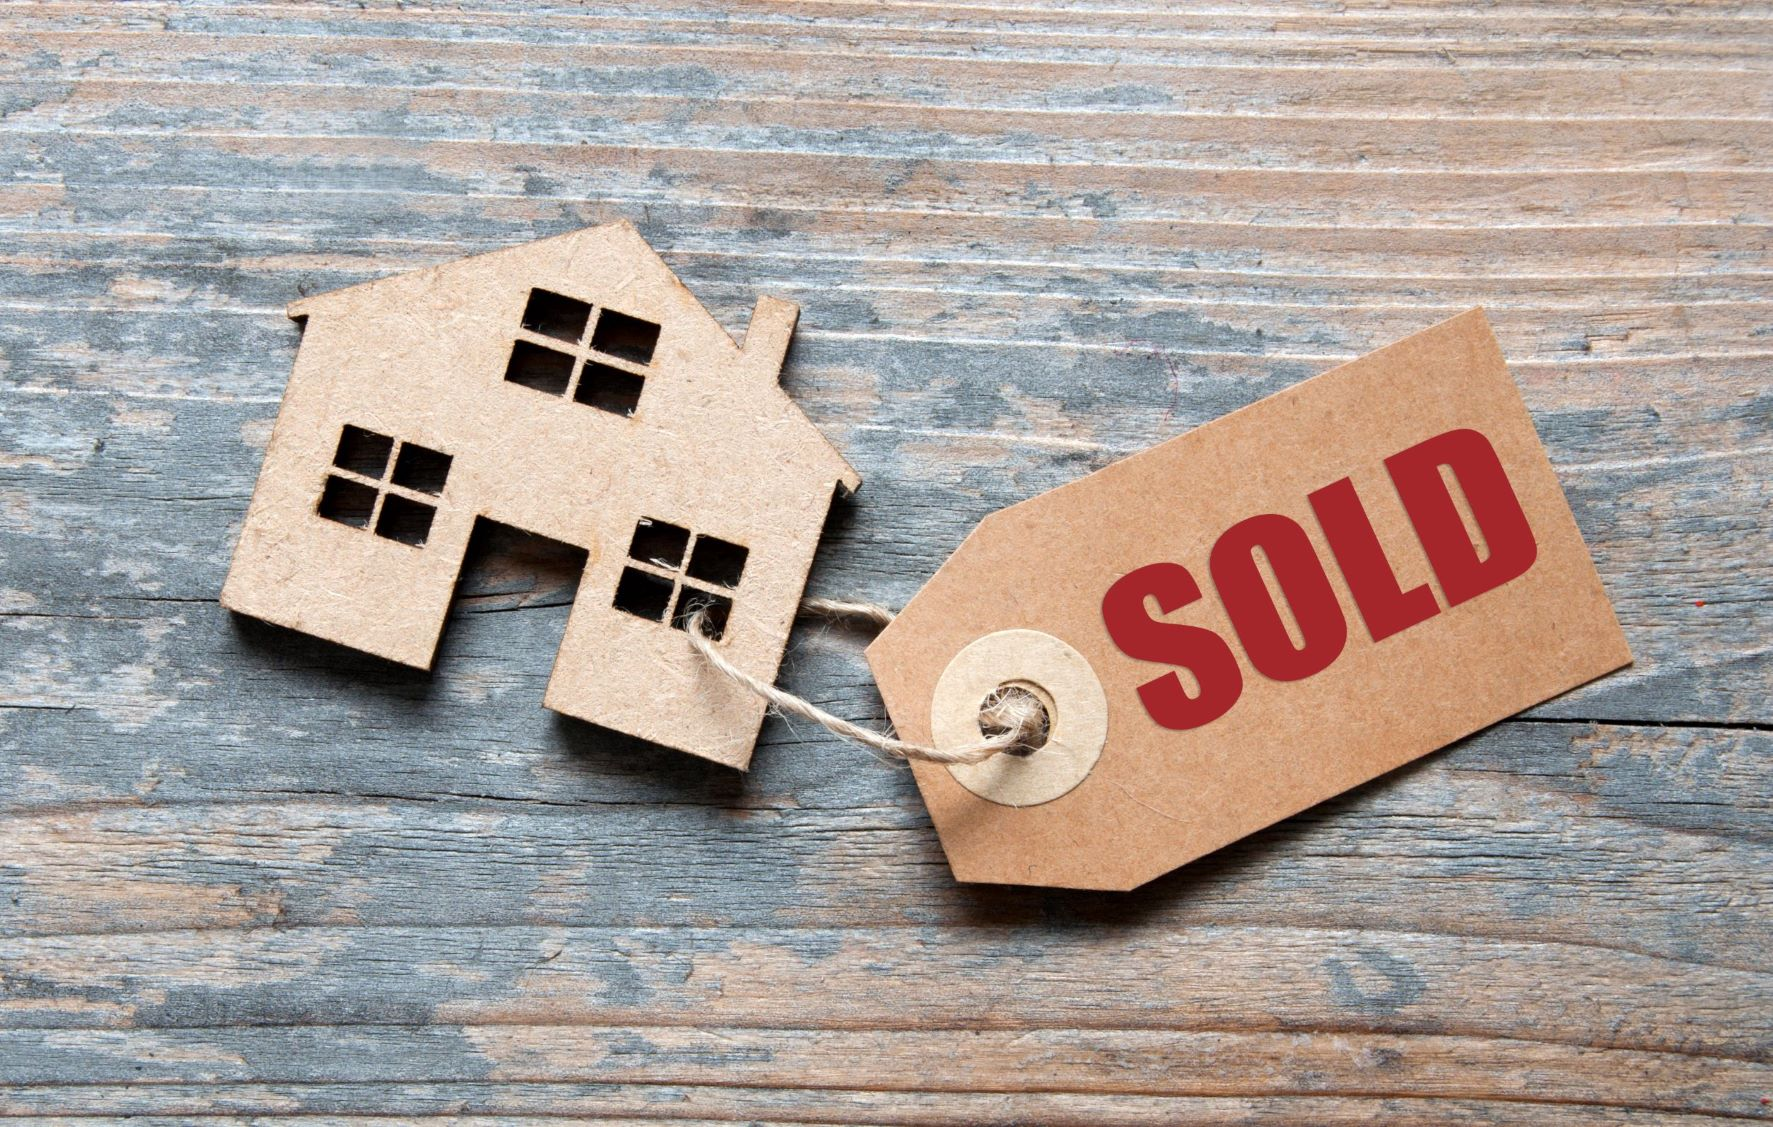 With Inventory Low, Key to Success is Listings